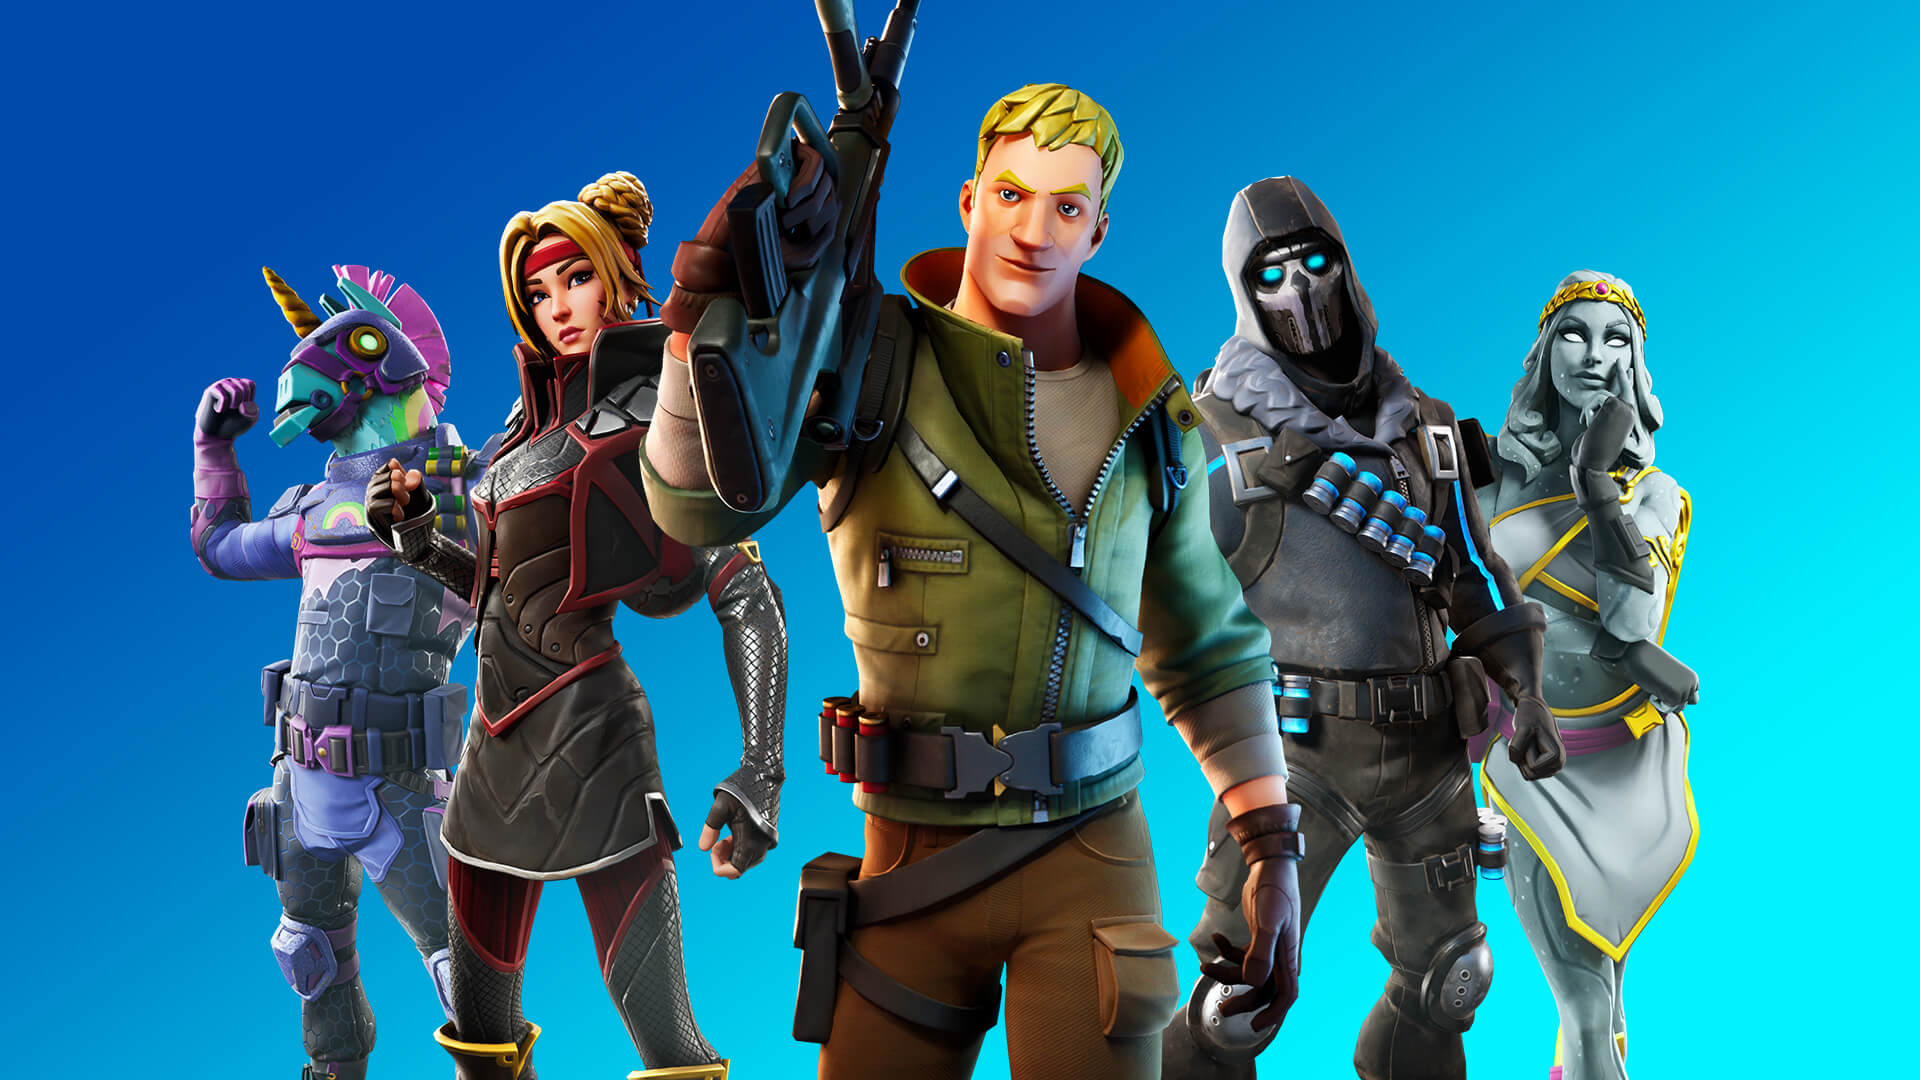 What Is 2fa In Fortnite For The Switch Fortnite 2fa How To Enable Epic Games Two Factor Authentication Tom S Guide